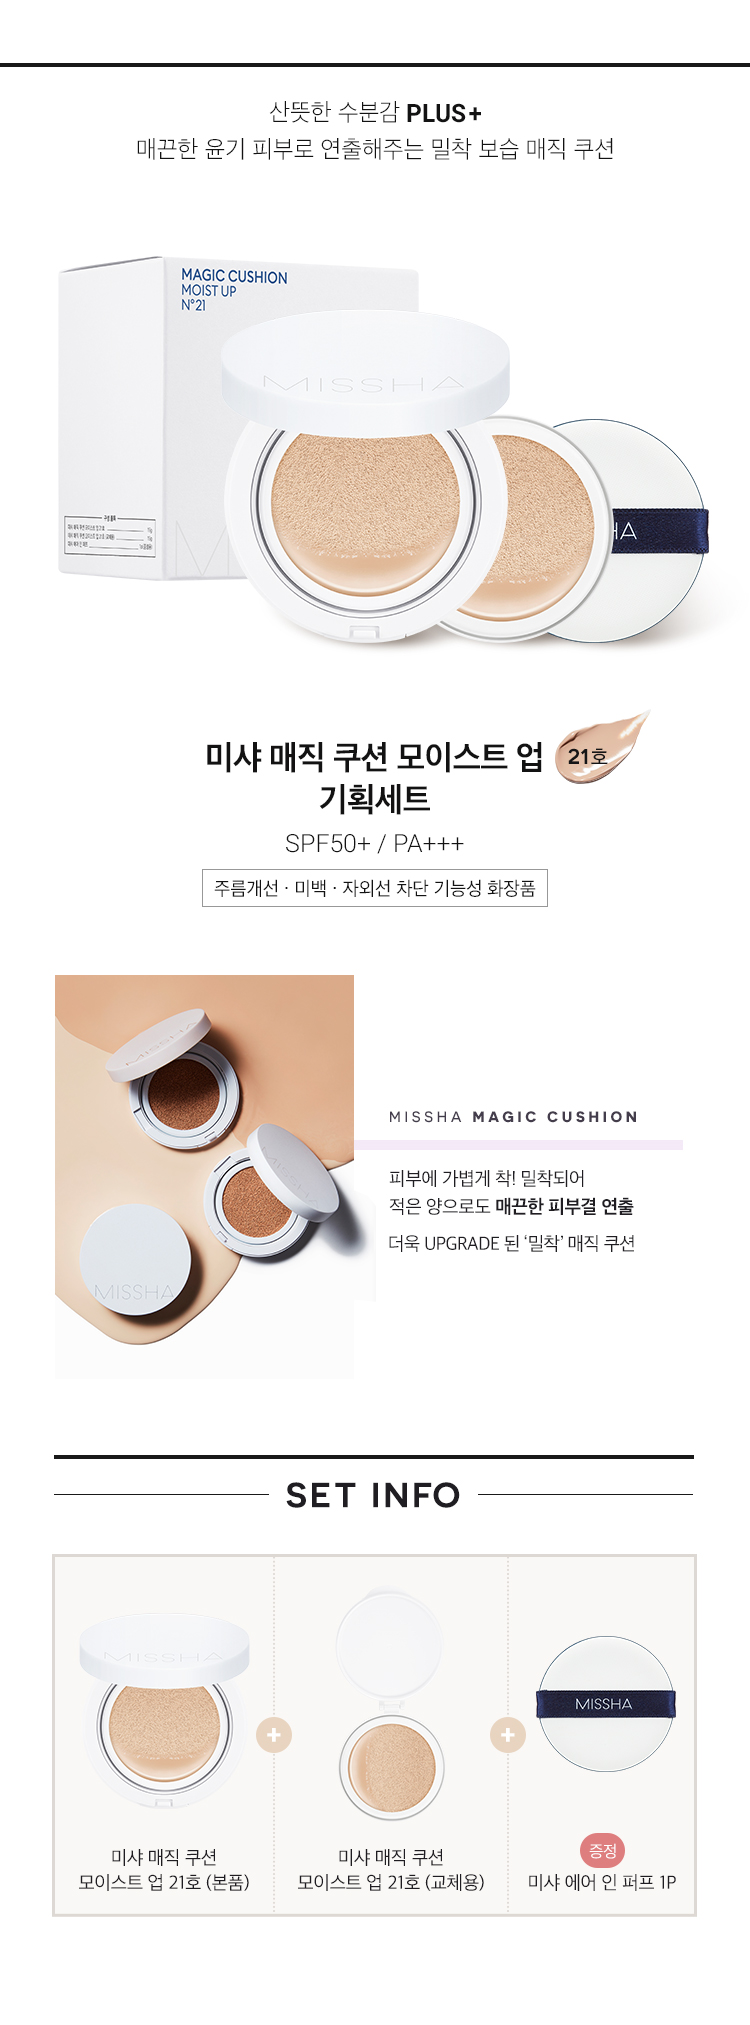 Missha-Magic-Cushion-Moist-Up